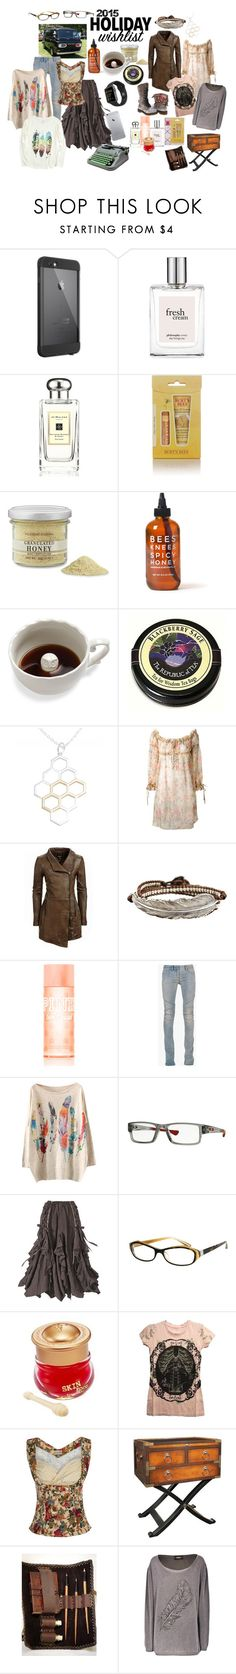 """""""My Dreaming Big Wish List"""" by foreevers ❤ liked on Polyvore featuring LifeProof, philosophy, Aquolina, Jo Malone, Burt's Bees, Williams-Sonoma, Imm Living, Alexander McQueen, Dr. Martens and Danier"""